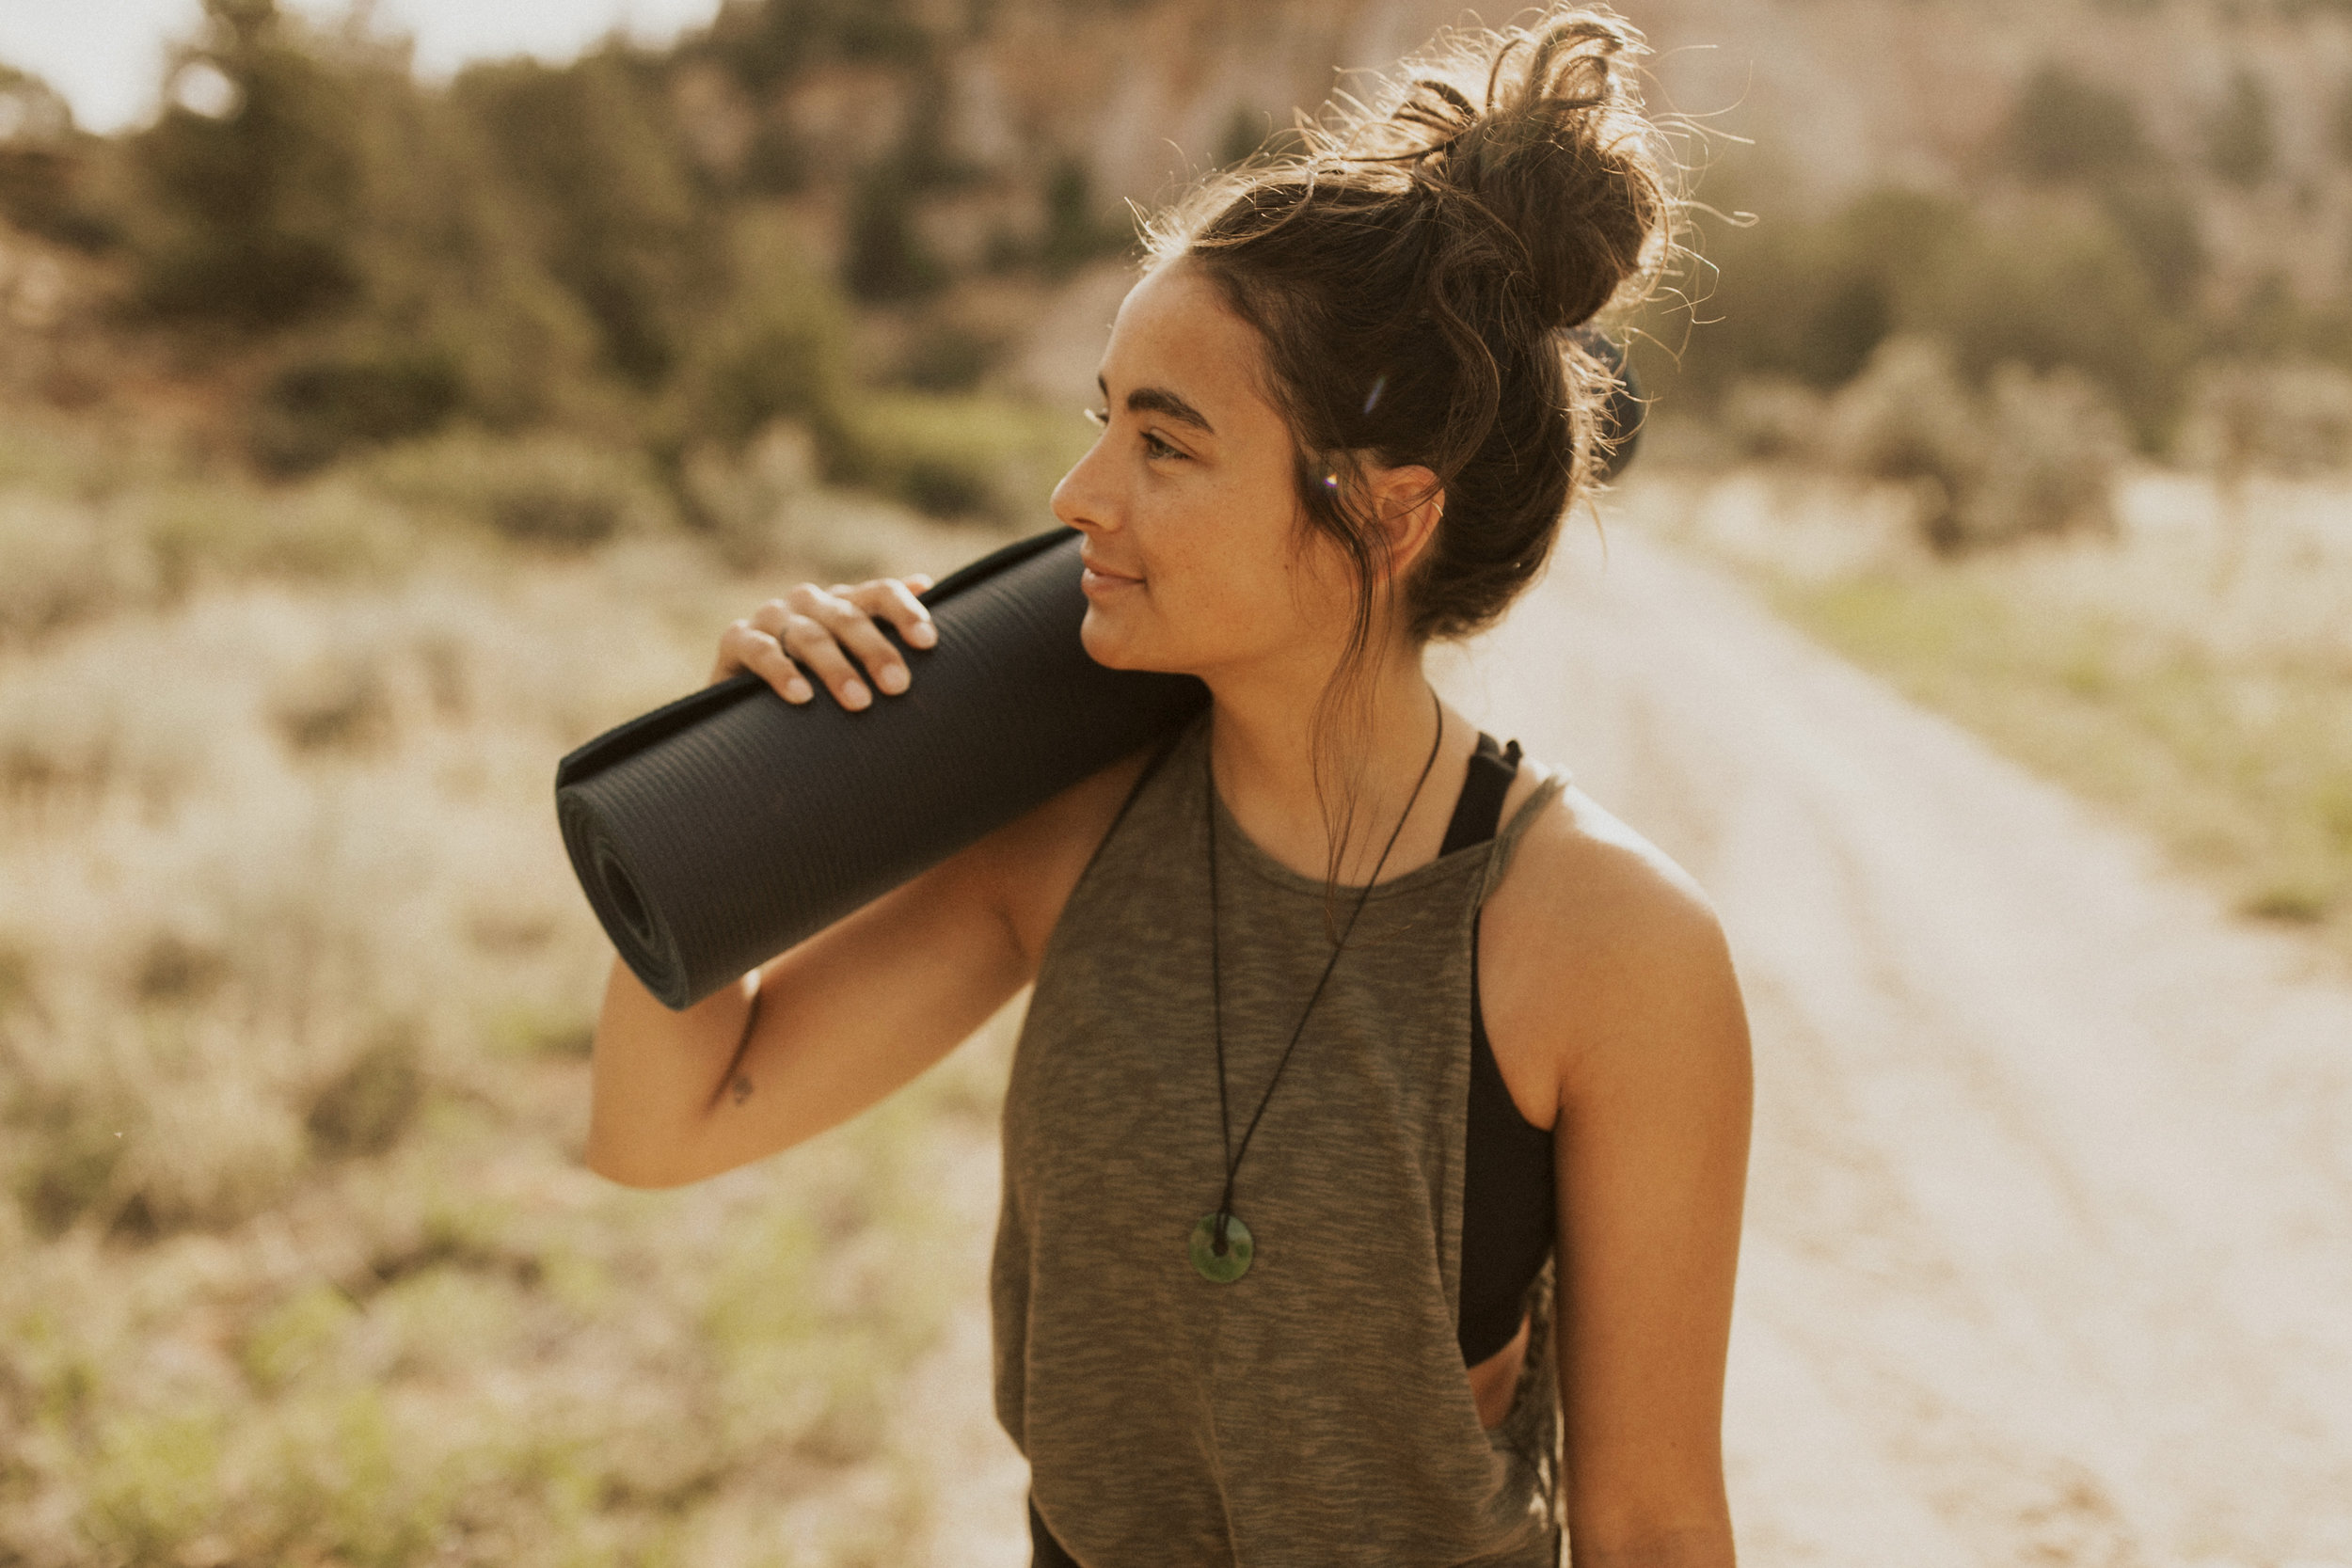 Stella Trincado - Stella is a 20 year old yogi from Northern Utah. She is a certified yoga instructor with a deep love for the desert. Besides yoga she is also a skier, rock climber, and an incredible friend to all.@stellatrincado